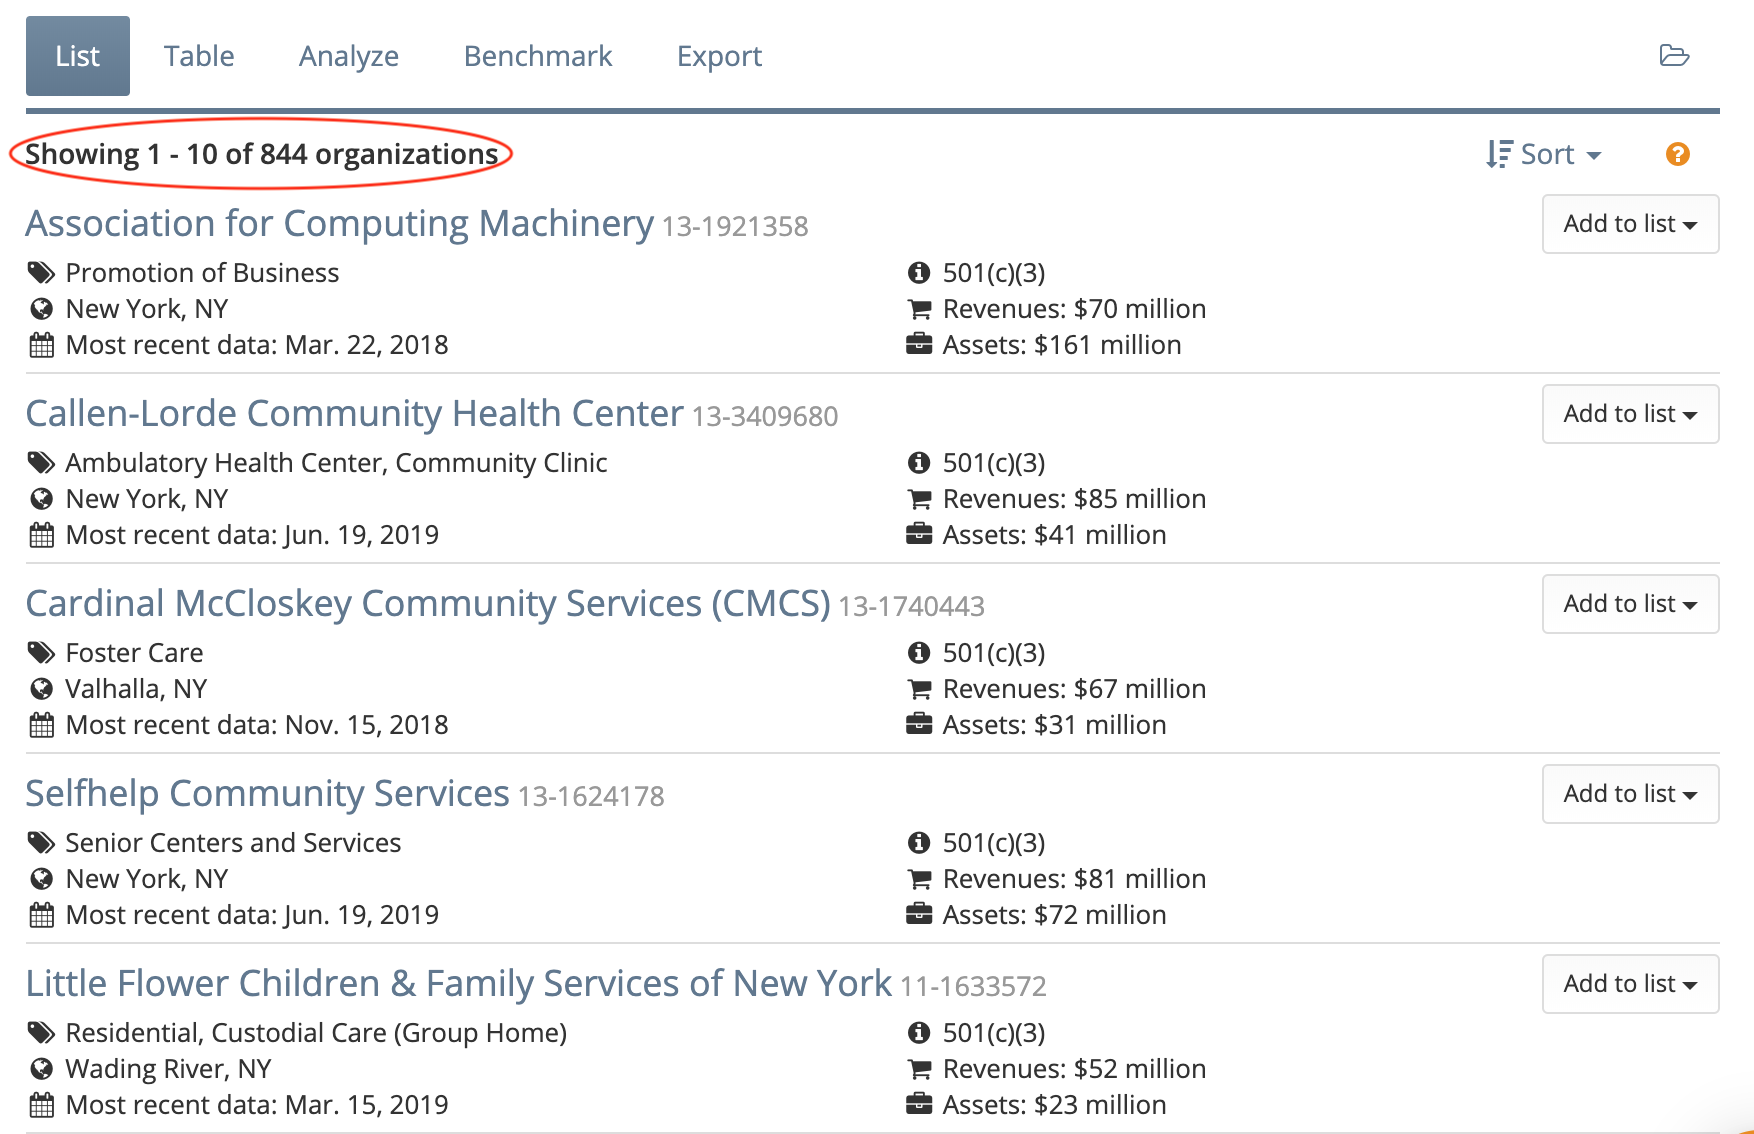 See how many organizations meet your search query